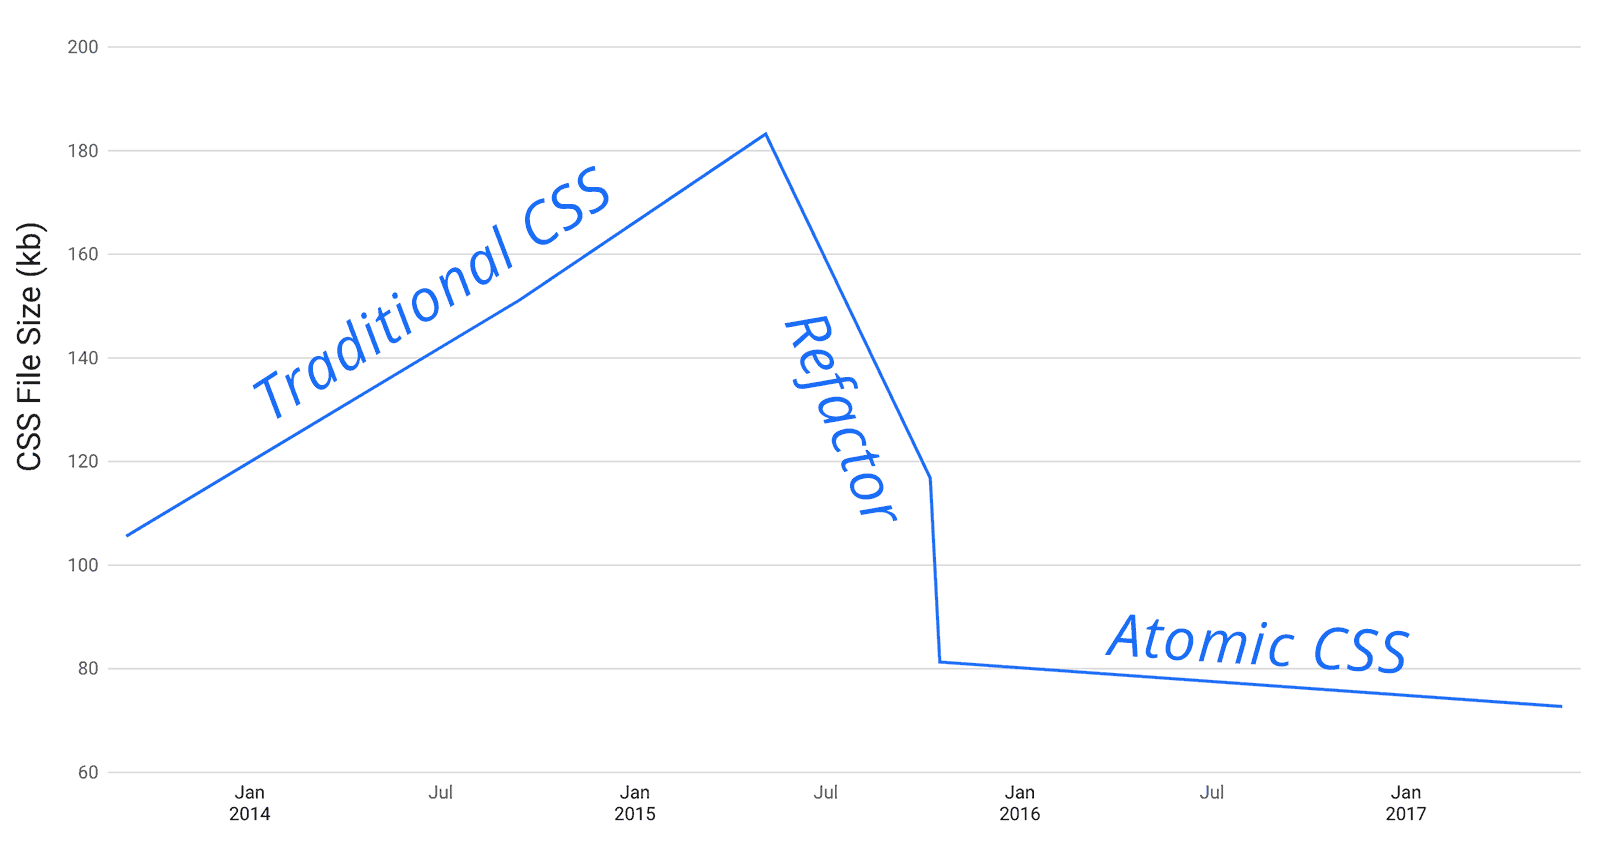 Oh No! Our Stylesheet Only Grows and Grows and Grows! (The Append